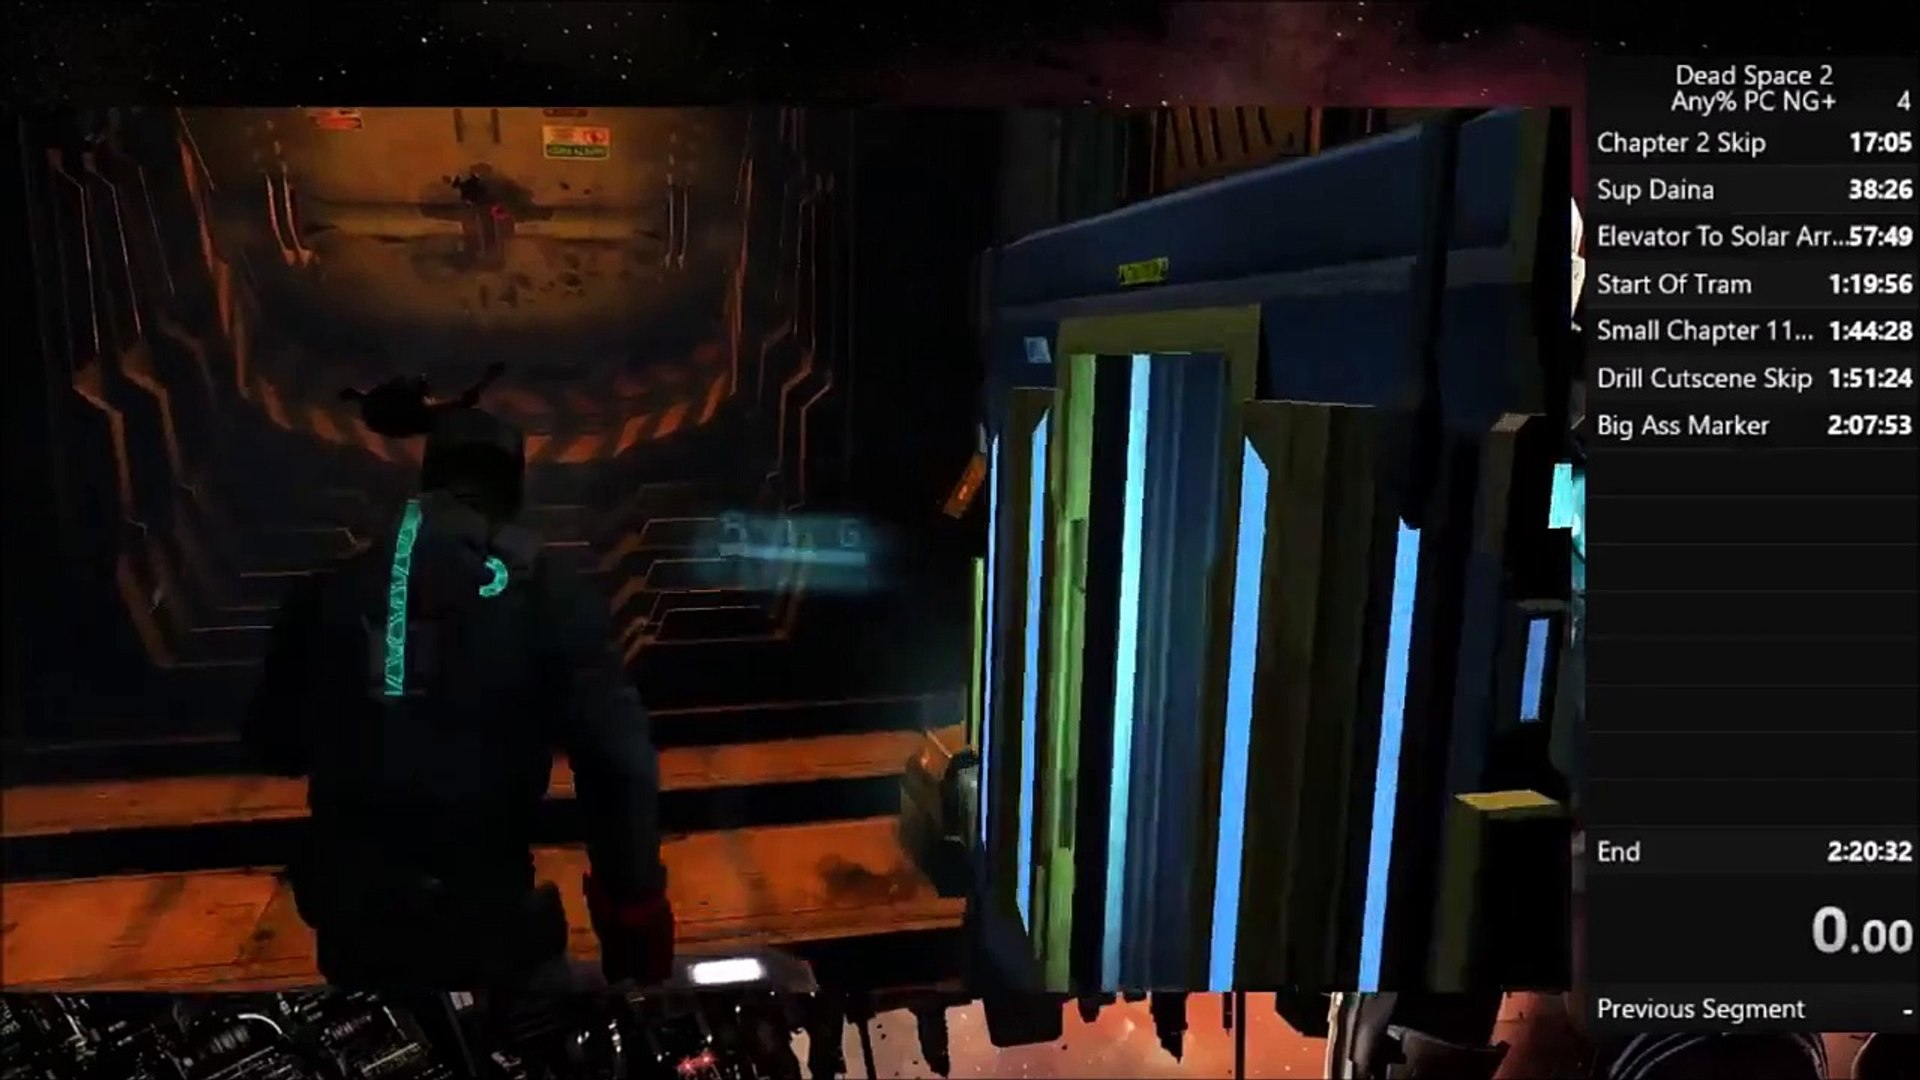 Dead Space 2 New Chapter 8 Skip Video Dailymotion